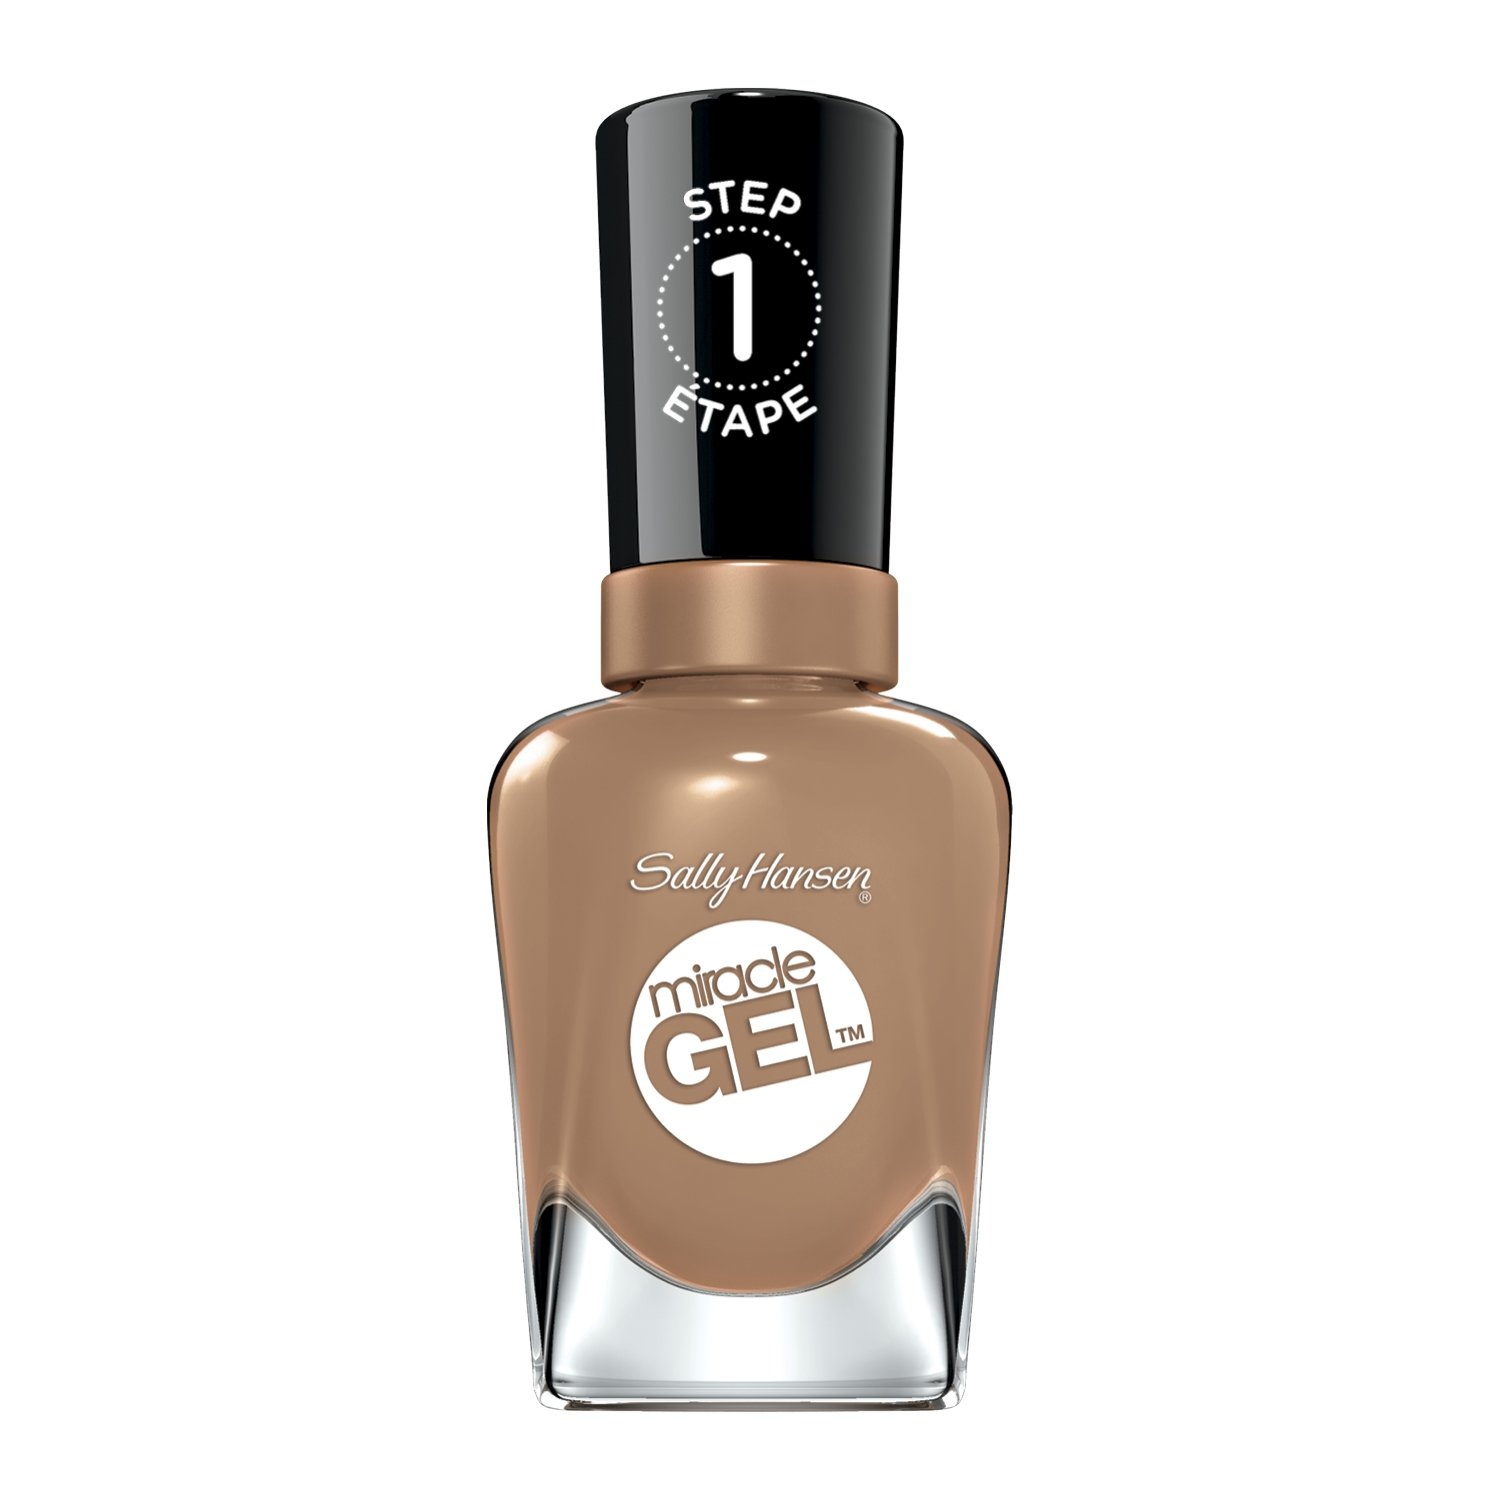 Sally Hansen Miracle Gel Nail Color, Truffle Shuffle, 0.5 Ounce